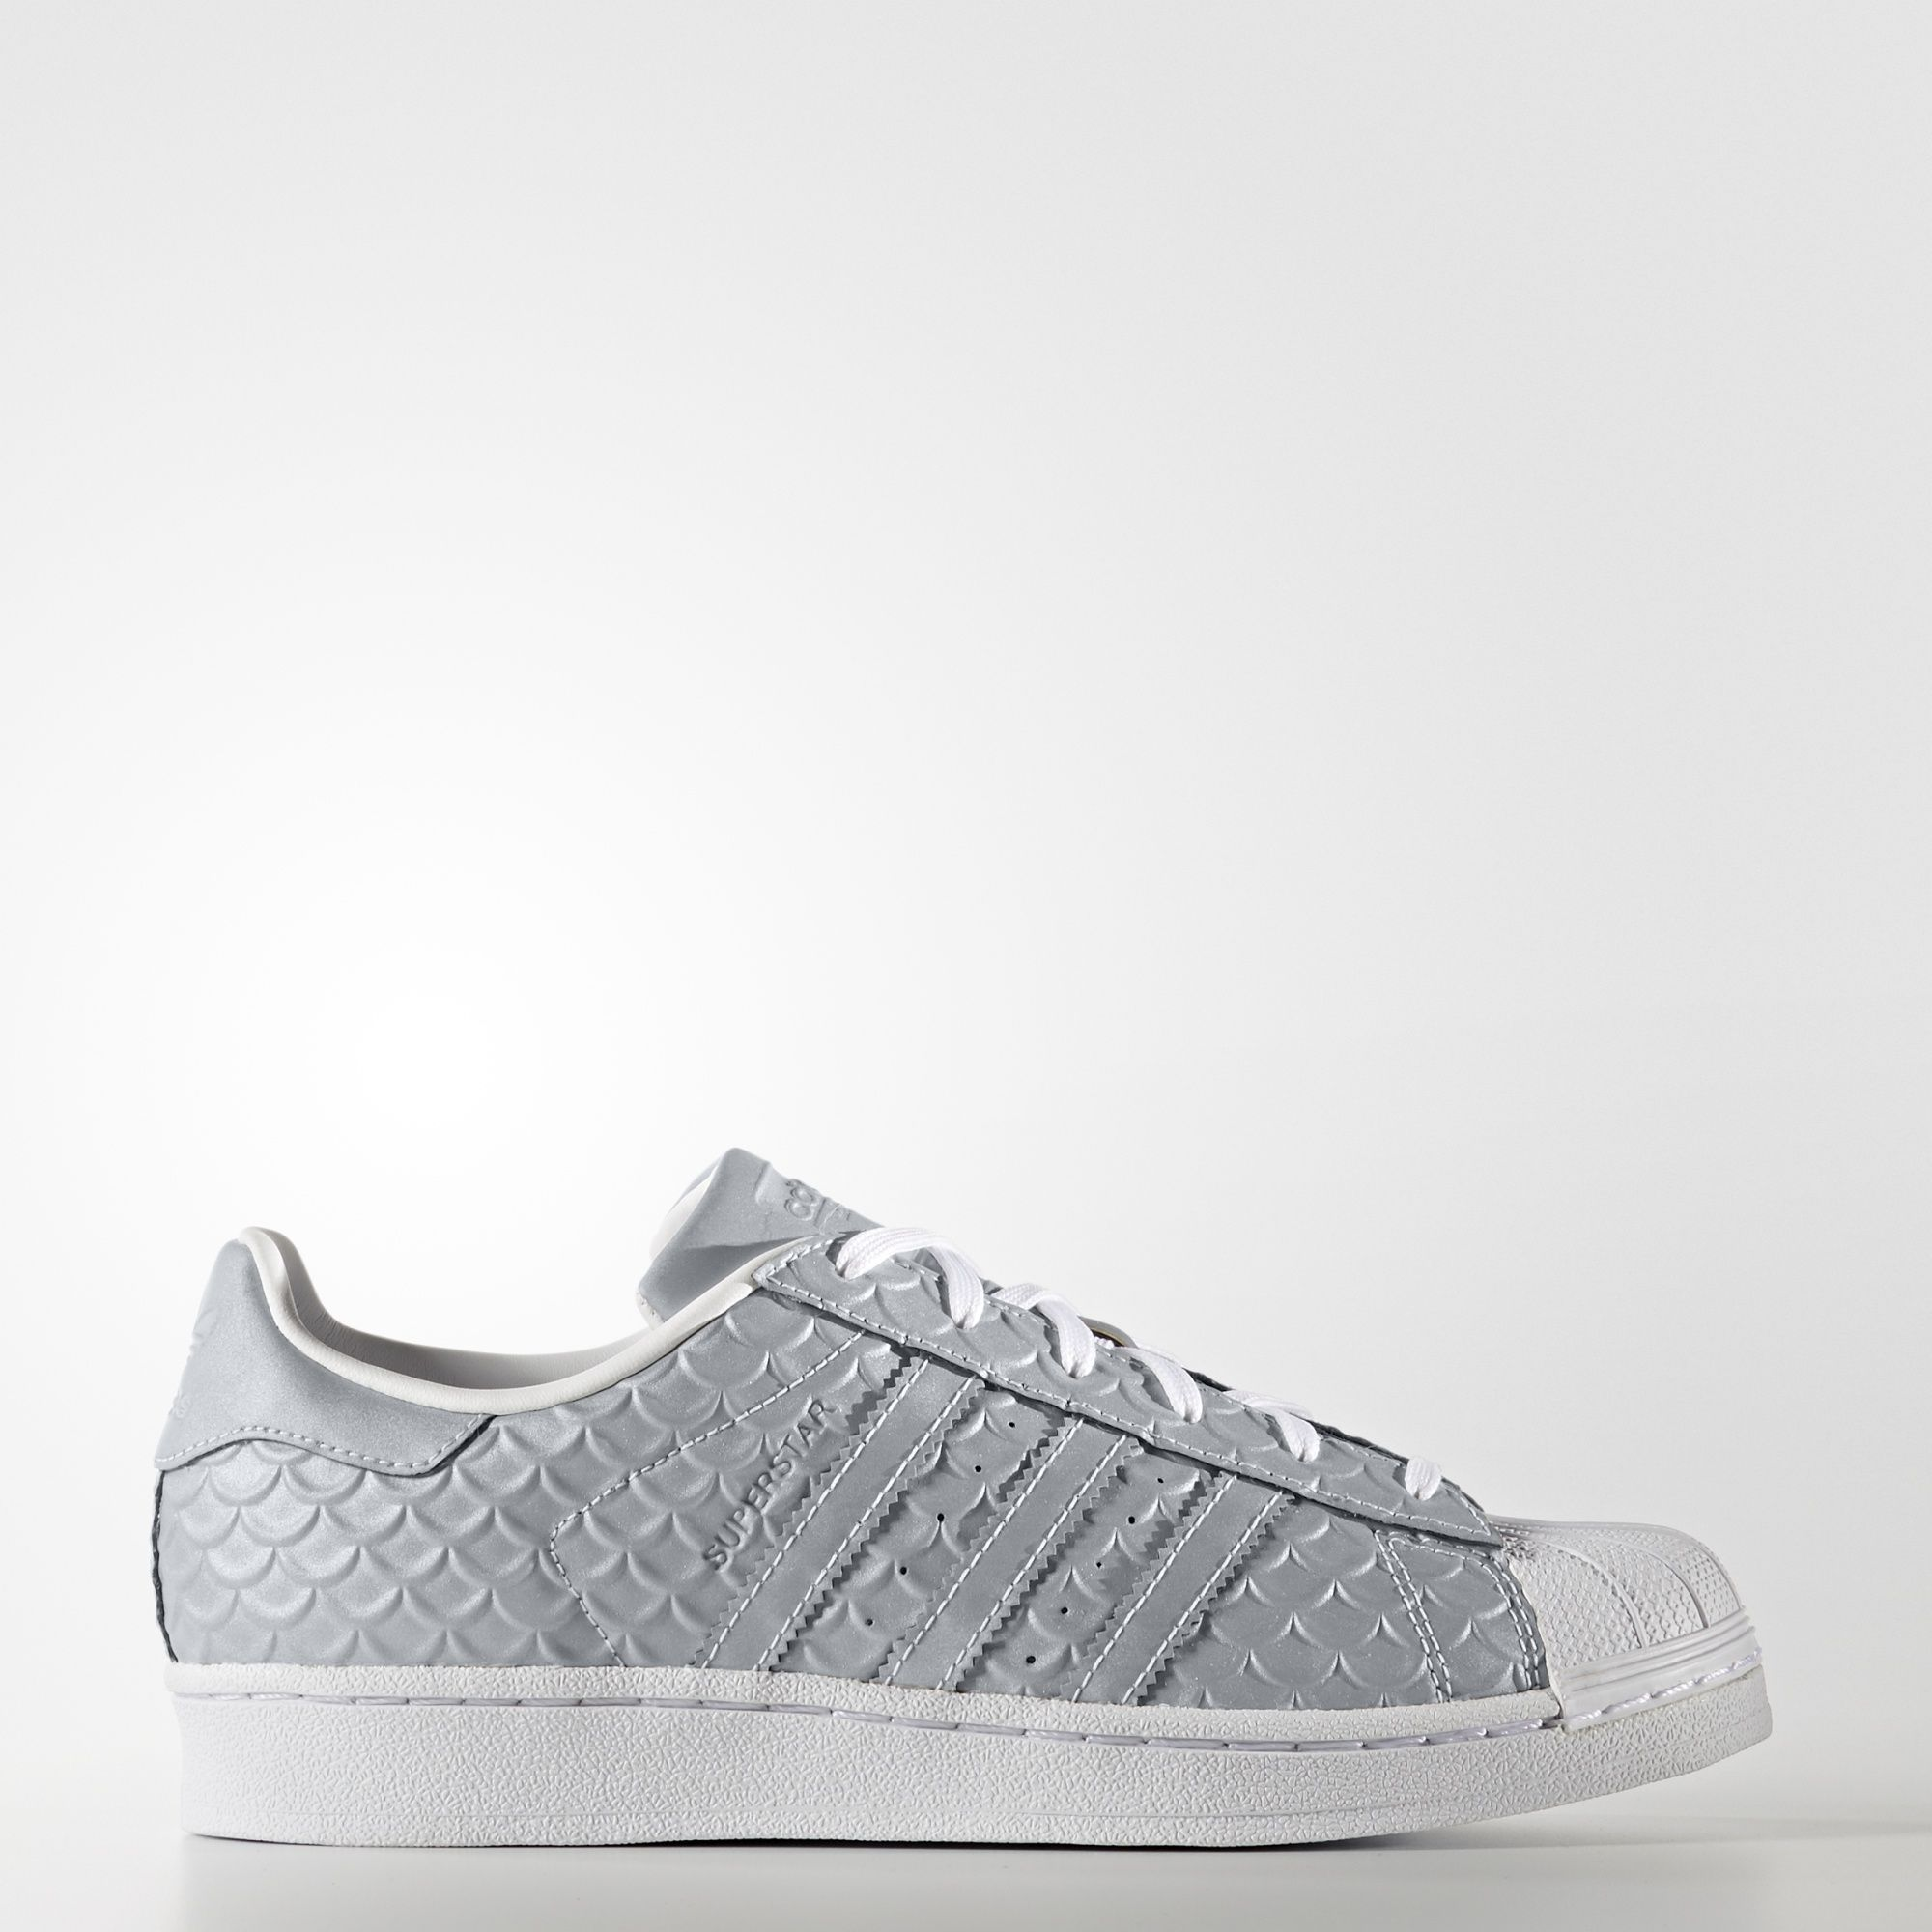 Find your adidas Superstar, Shoes at adidas. All styles and colours  available in the official adidas online store.